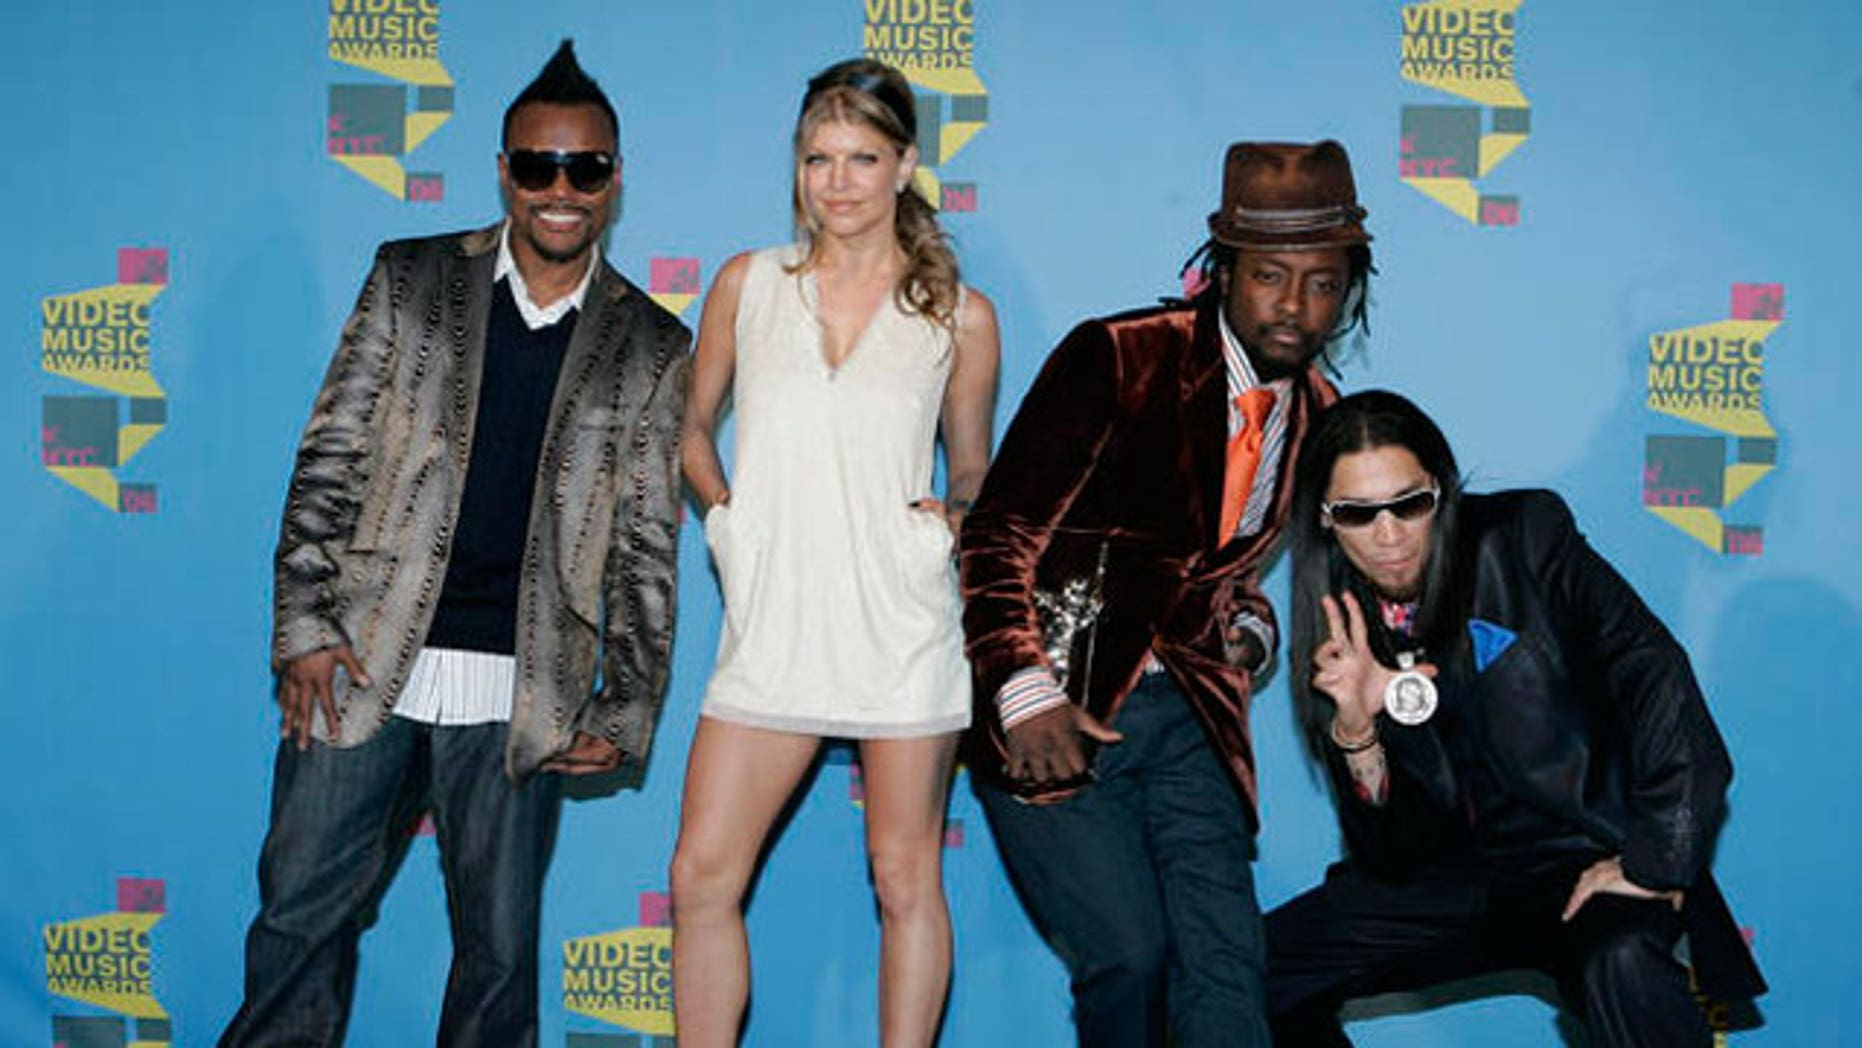 Black Eyed Peas rapper apl.de.ap recently revealed that he is legally blind.